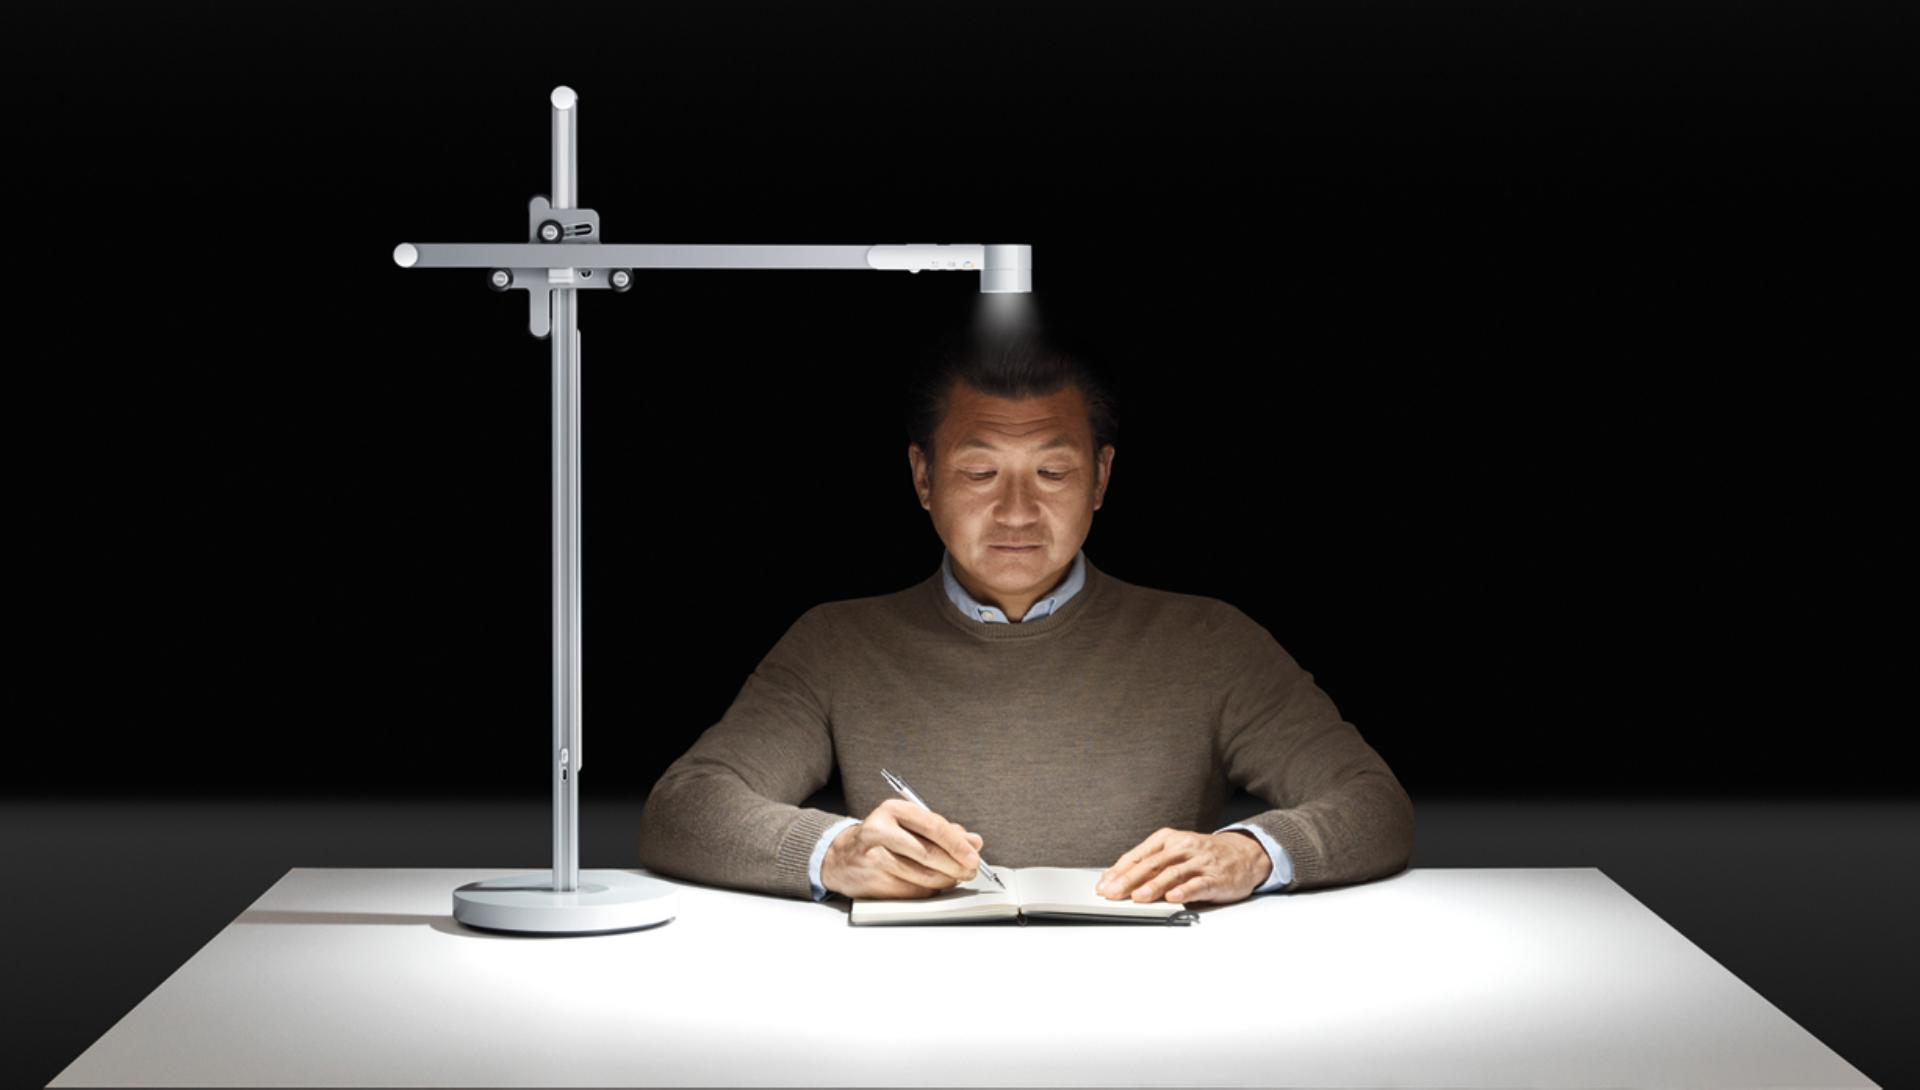 Older model using Dyson Lightcycle light at his desk to work